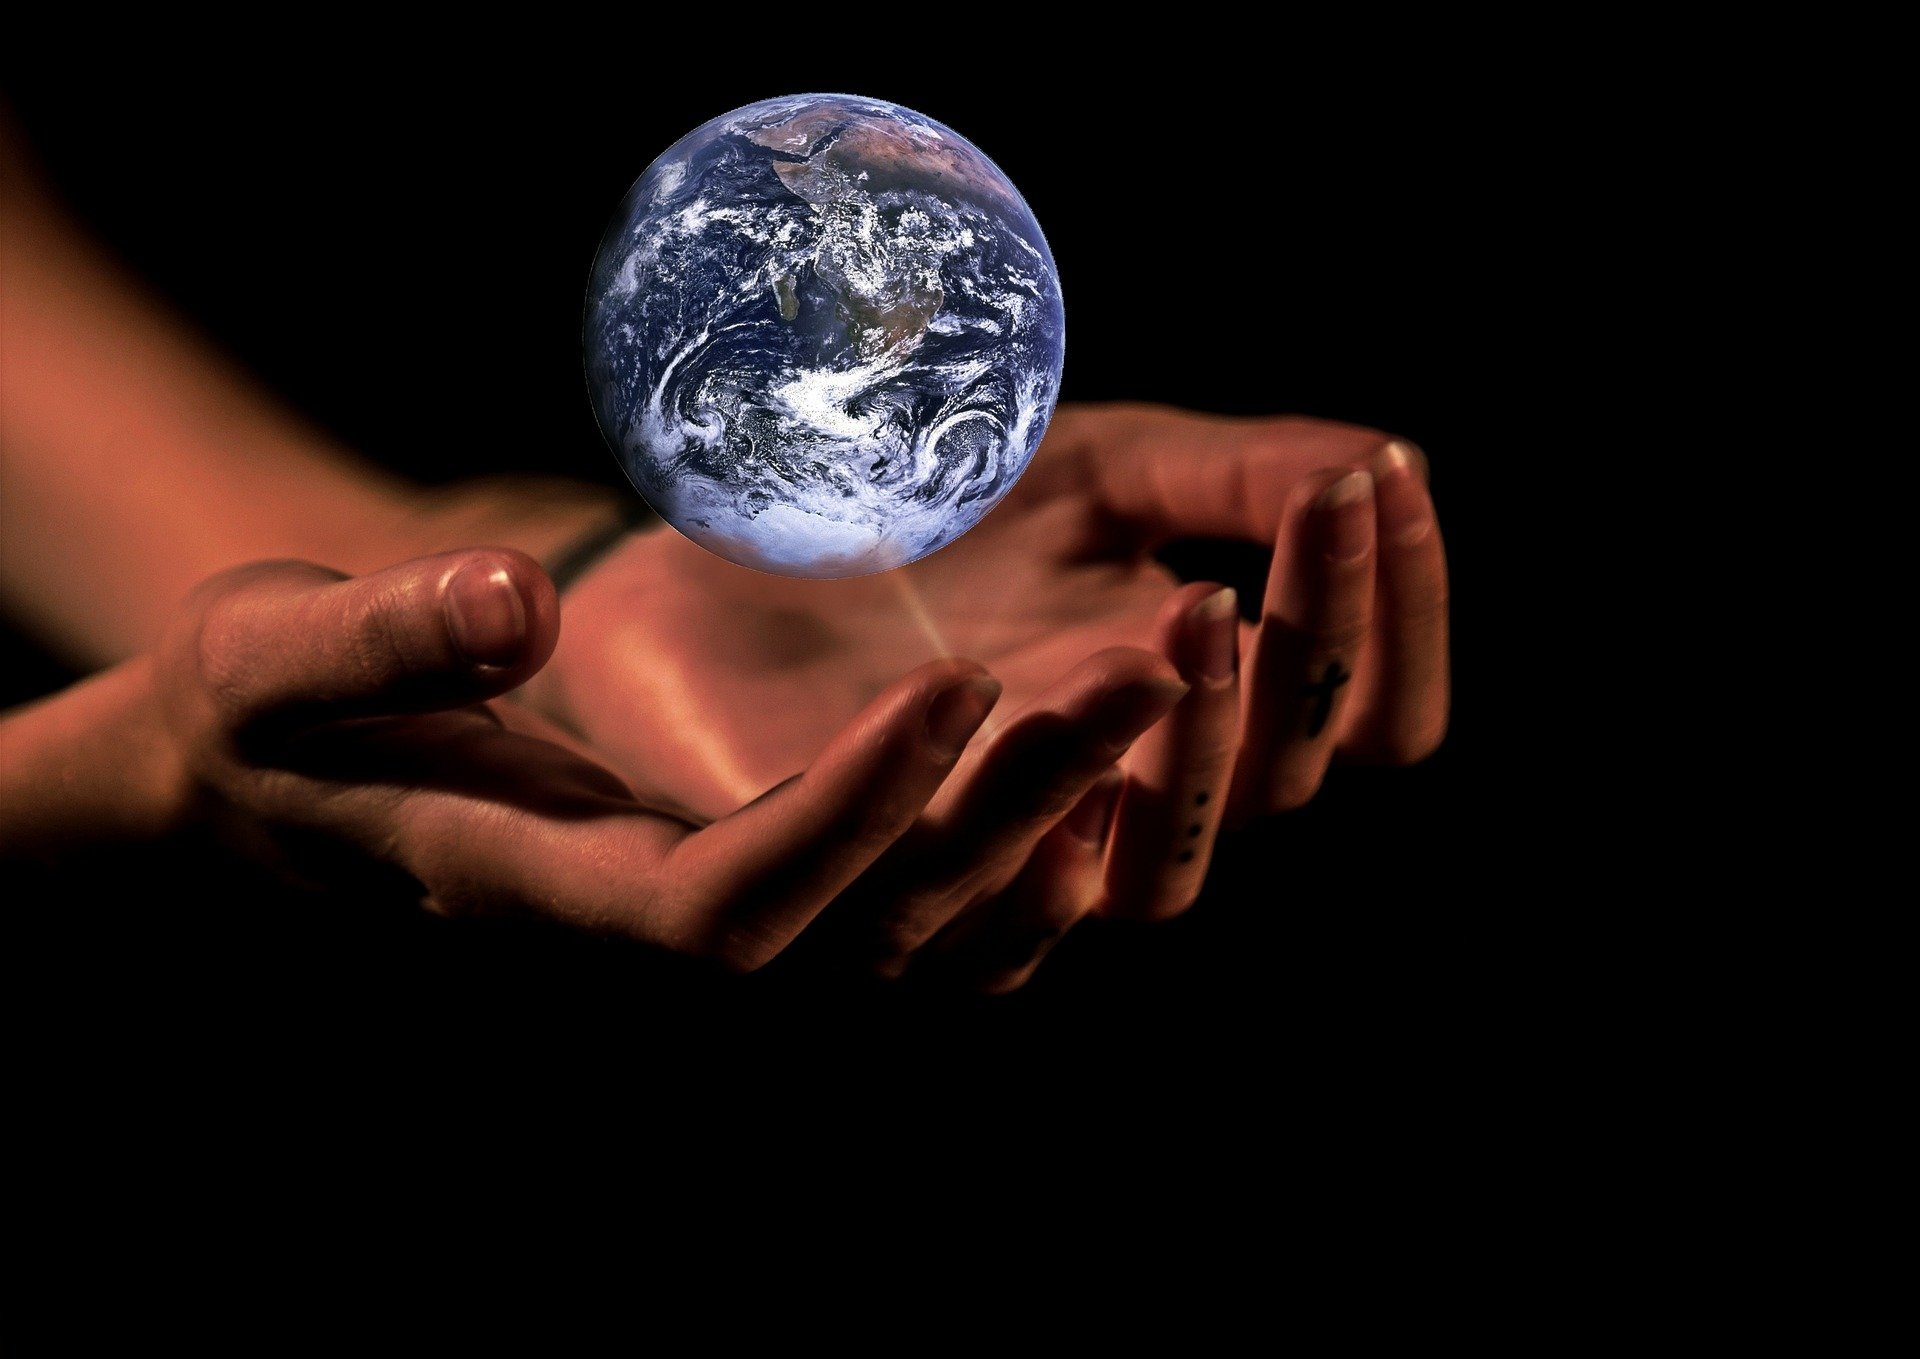 Illustration that planet earth is in our hands | Source: Pixabay